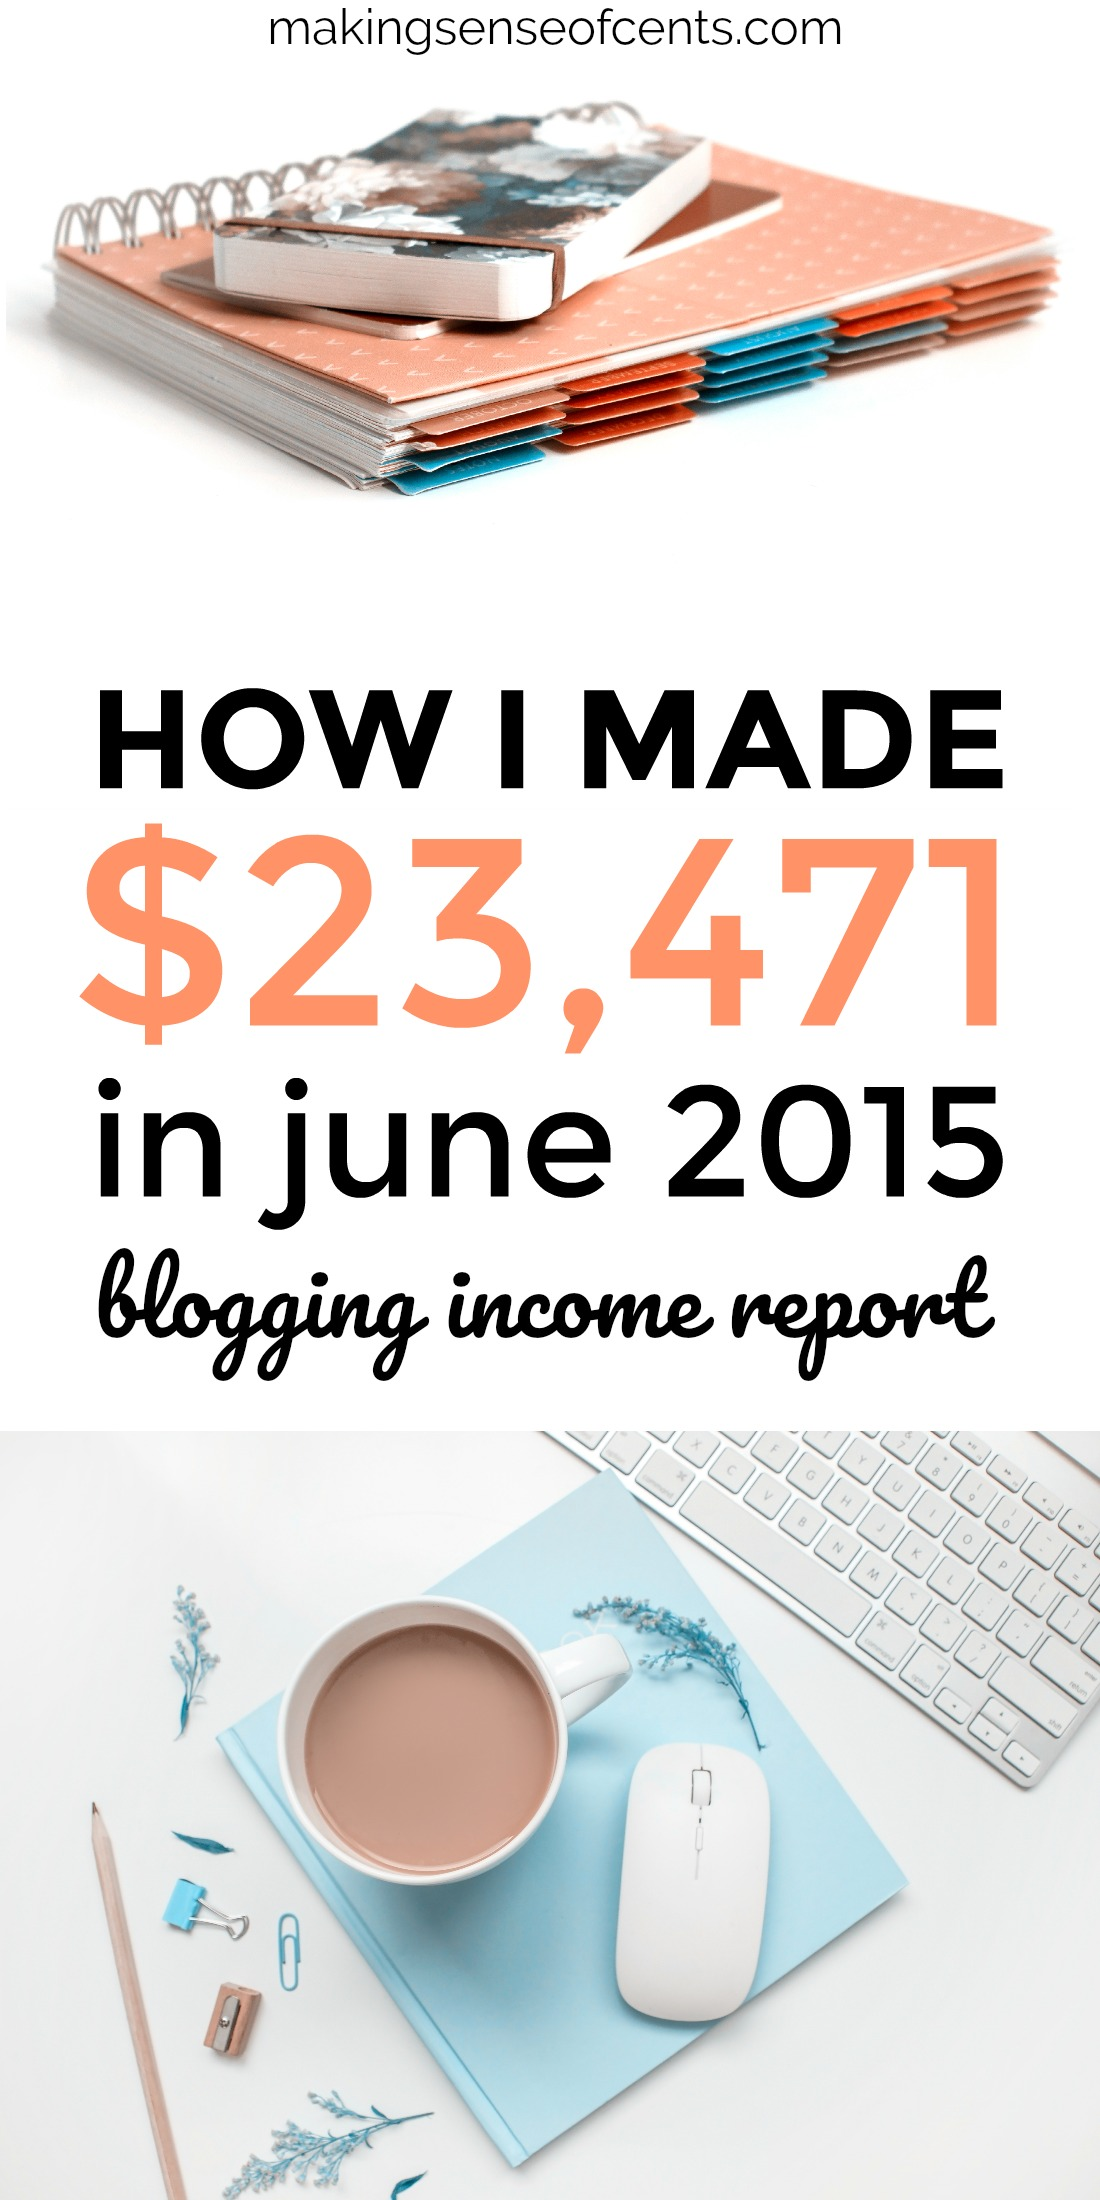 Check out my blogging income report. #makemoneyblogging #bloggingincome #incomereport